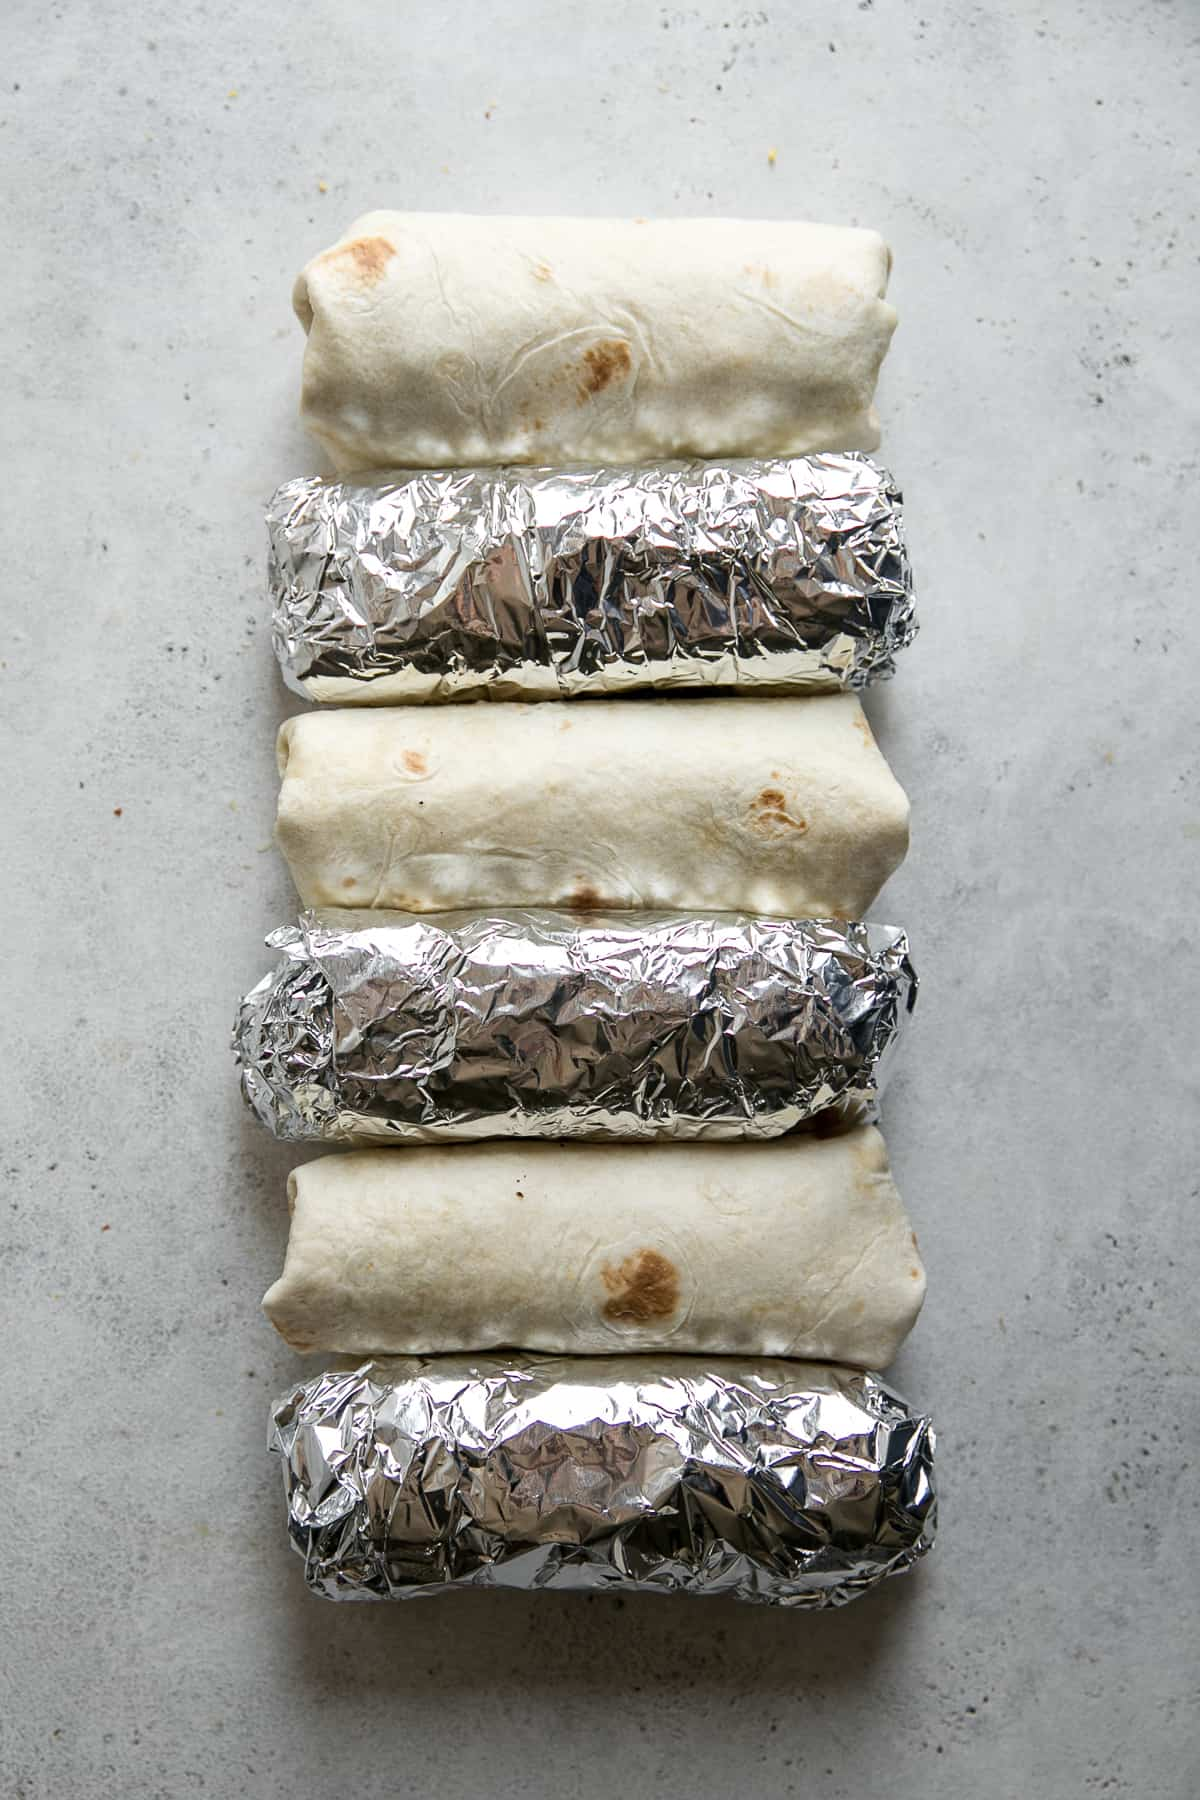 breakfast burritos wrapped in tin foil